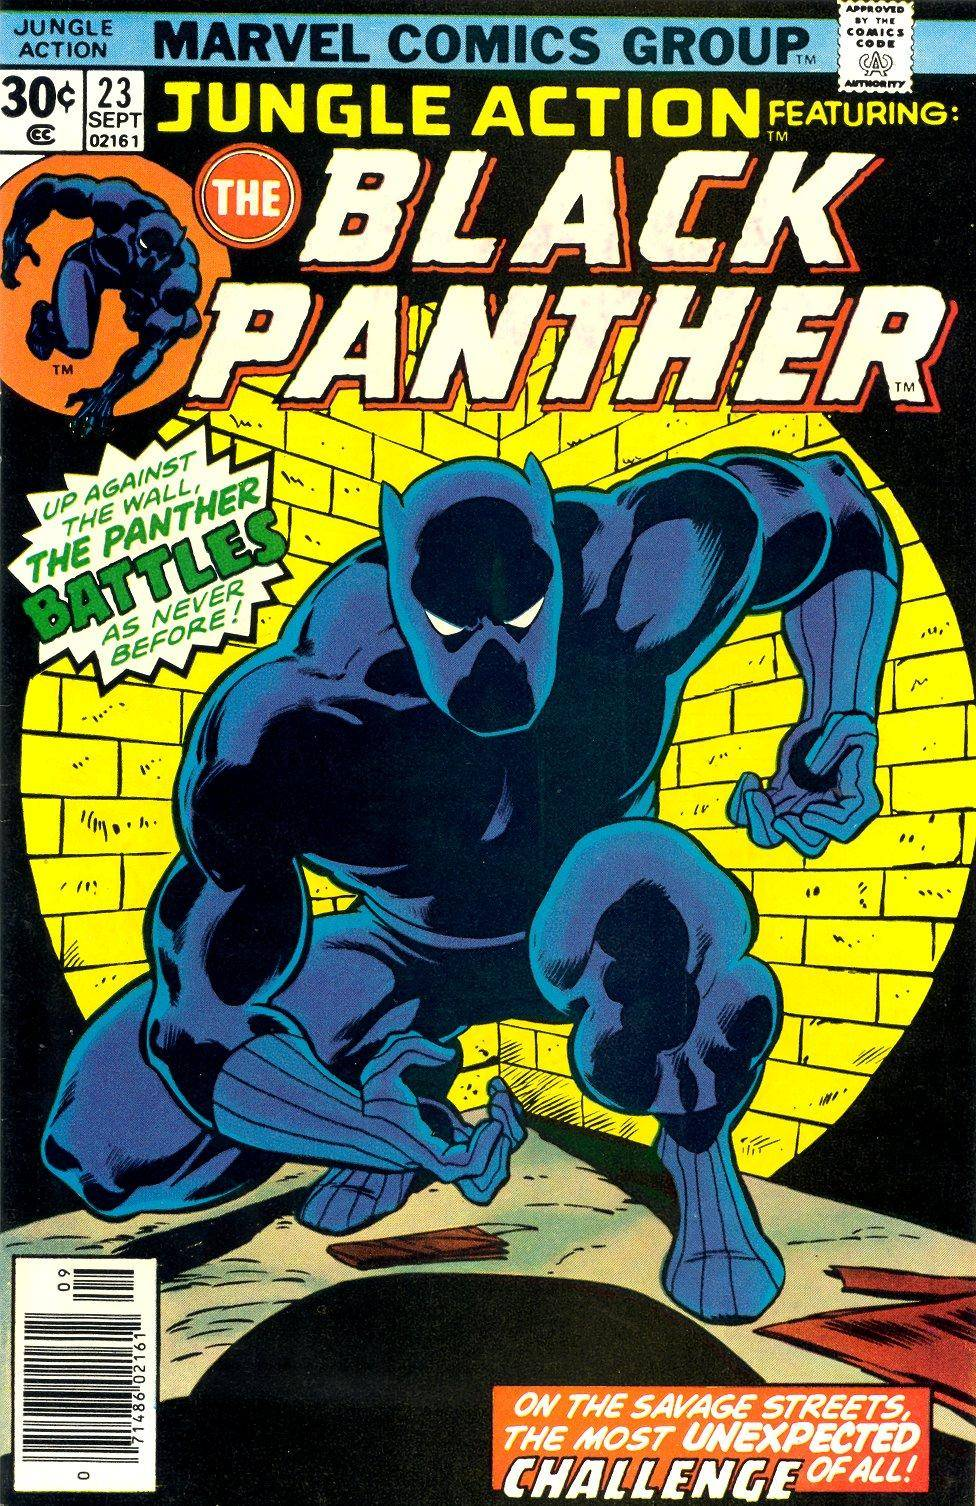 Jungle Action v2 023 featuring Black Panther